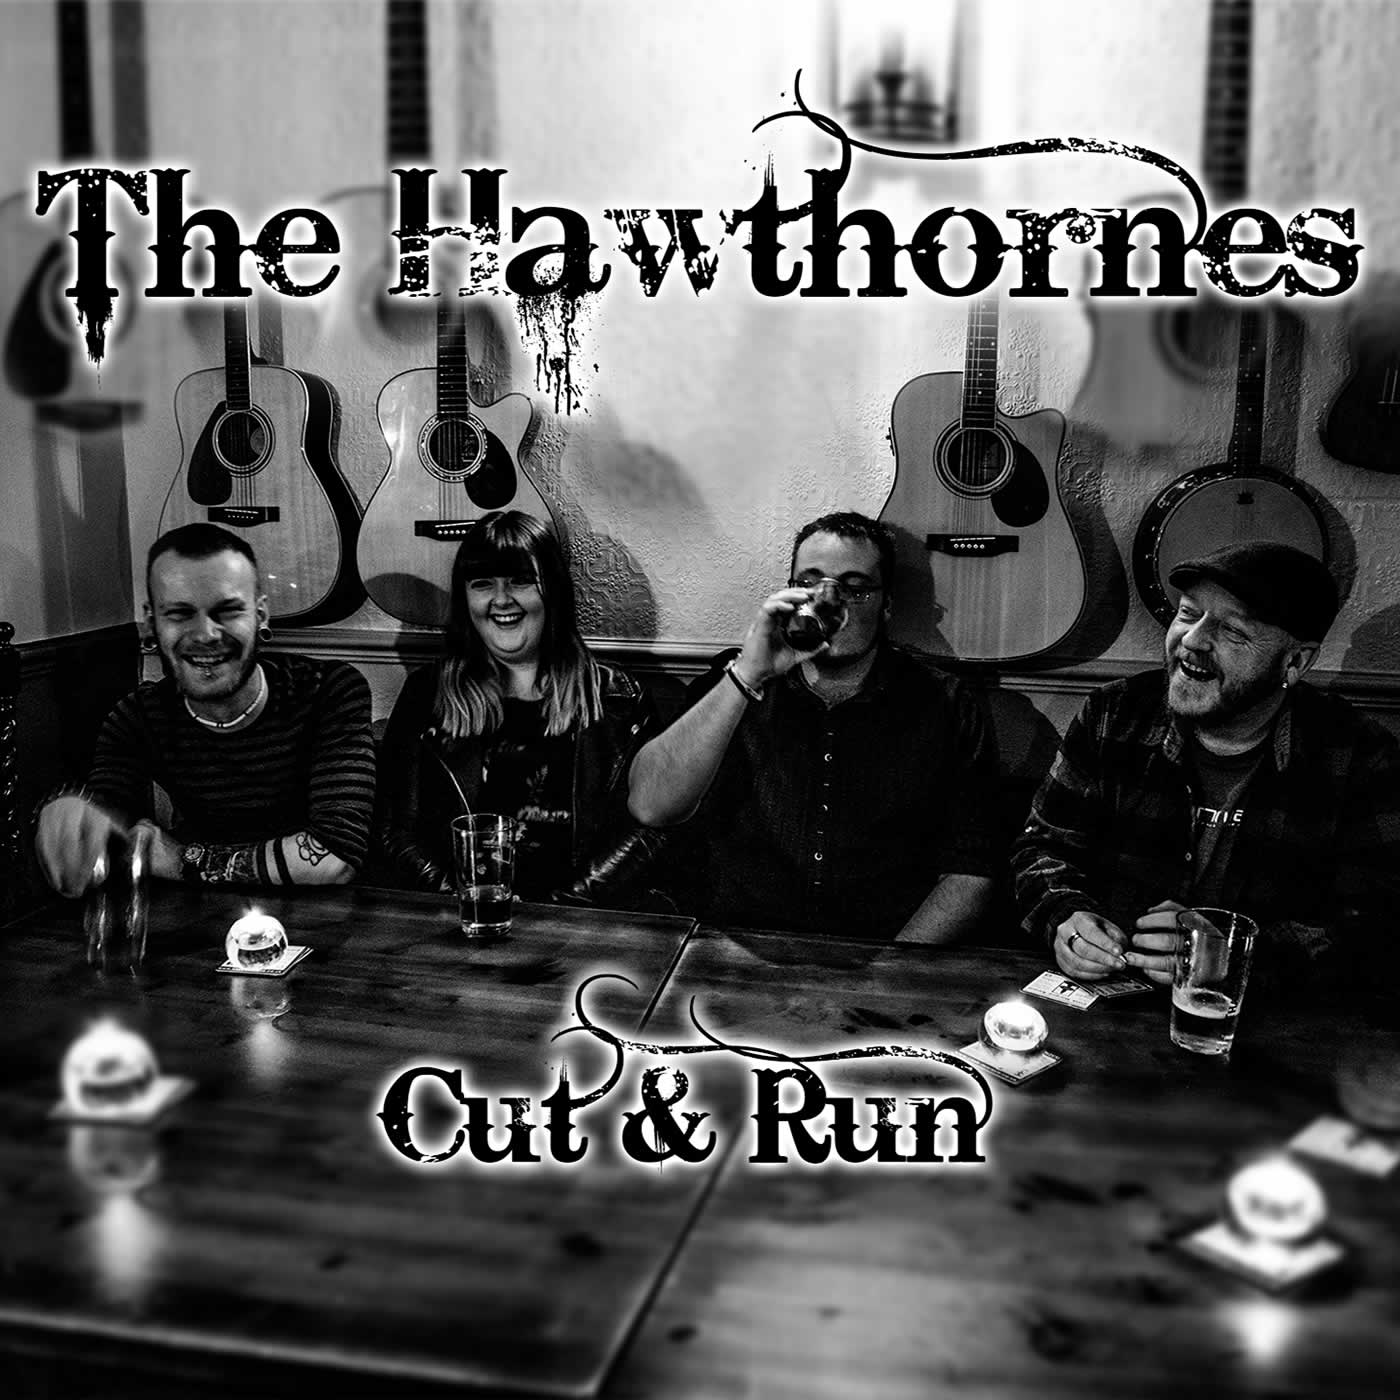 The Hawthornes album cover for Cut & Run